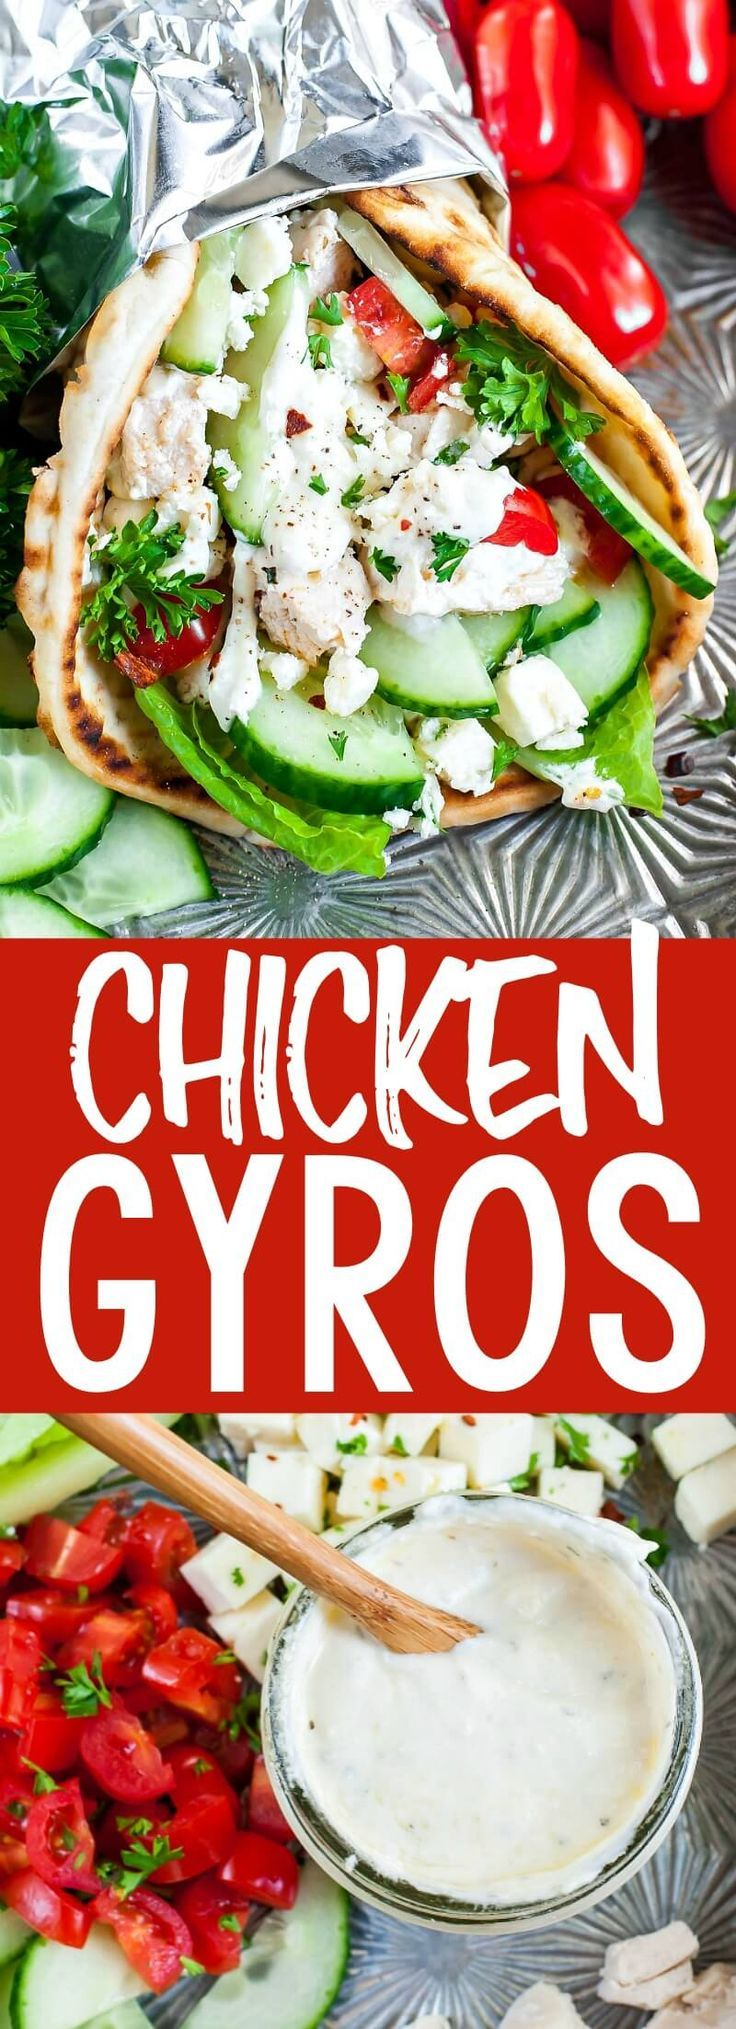 Easy Chicken Gyros with Greek Feta Sauce images